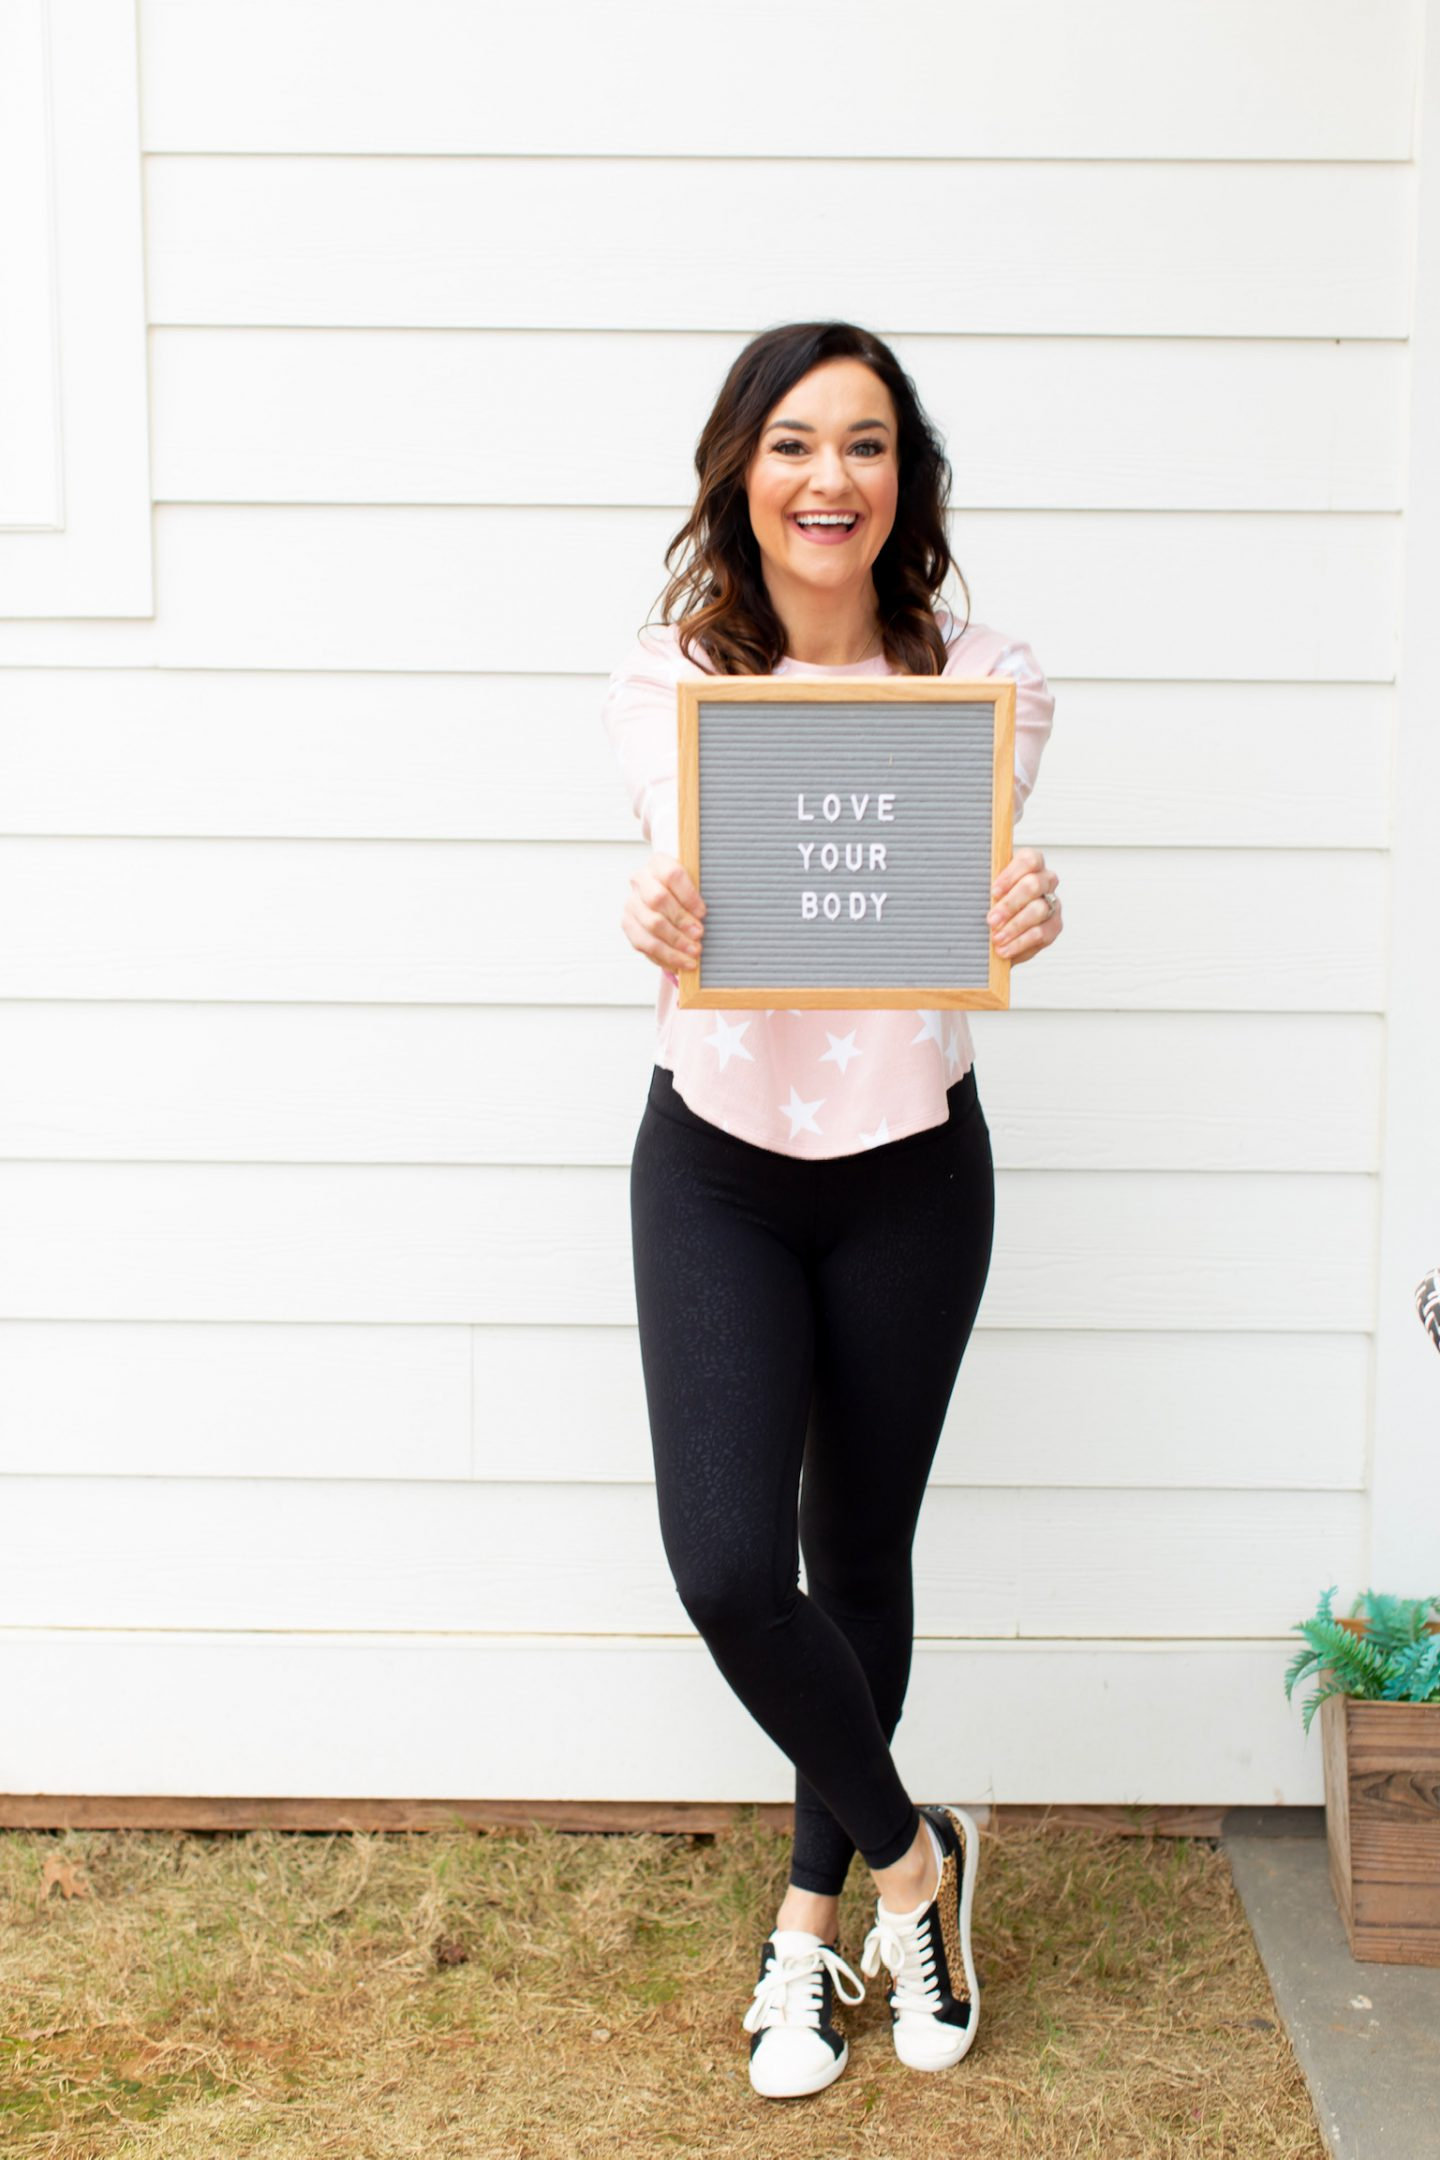 Love Your Body Challenge: 14 Days And 14 Ways To Love Our Bodies And Balance Self Care by Alabama Health + Wellness blogger, Heather Brown // My Life Well Loved